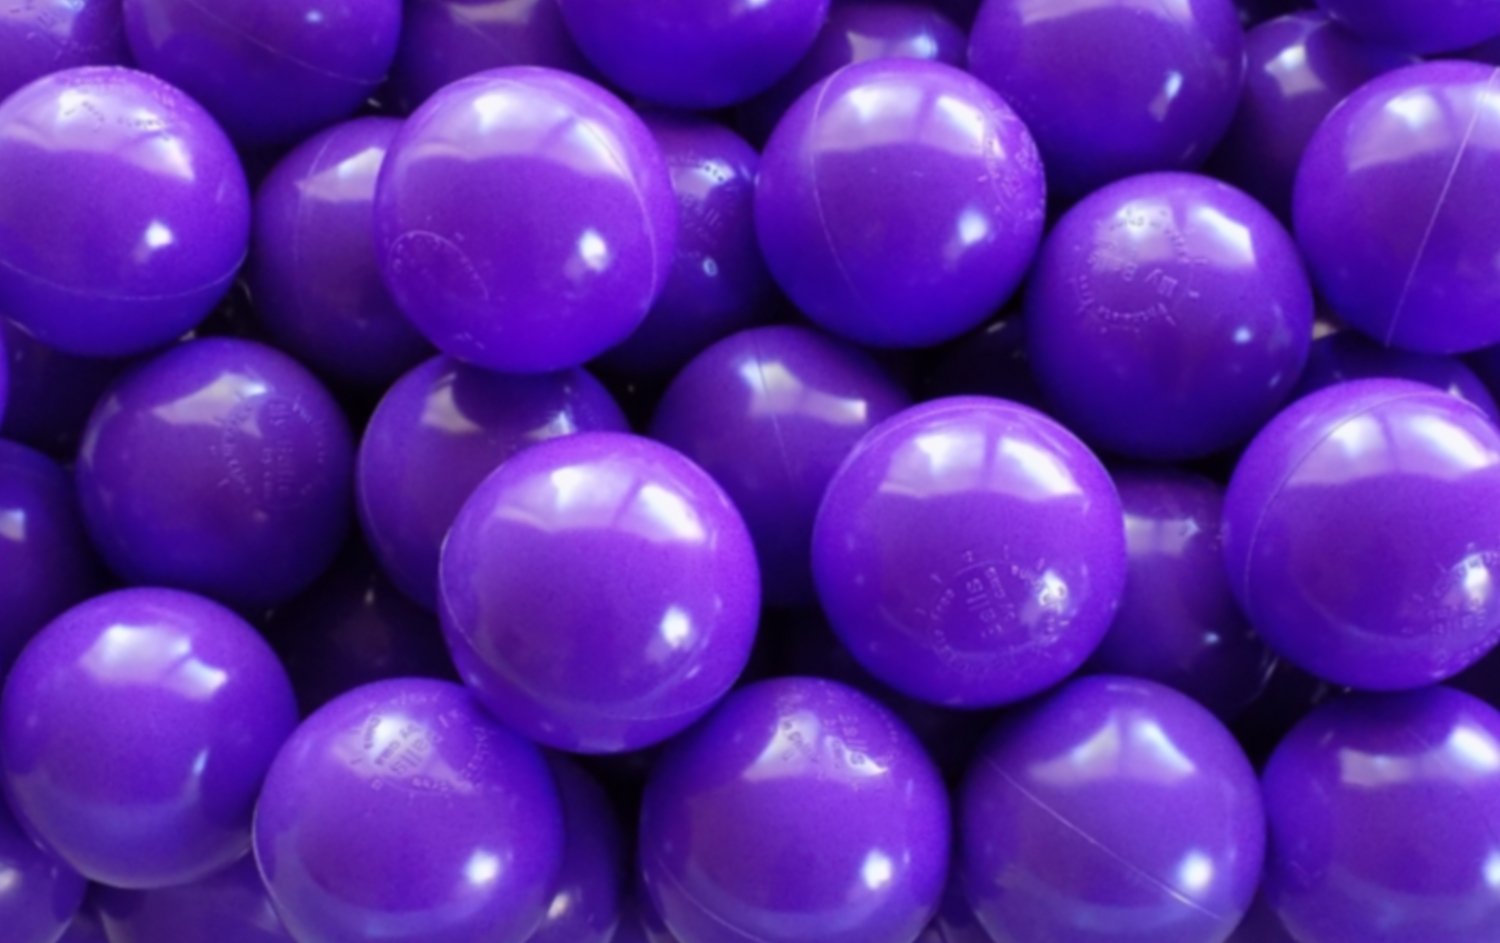 My Balls Pack of 500 Jumbo 3'' Purple Color Commercial Grade Ball Pit Balls - Air-Filled Crush-Proof Phthalate Free BPA Free PVC Free Non-Toxic Non-Recycled Plastic by My Balls by CMS (Image #4)